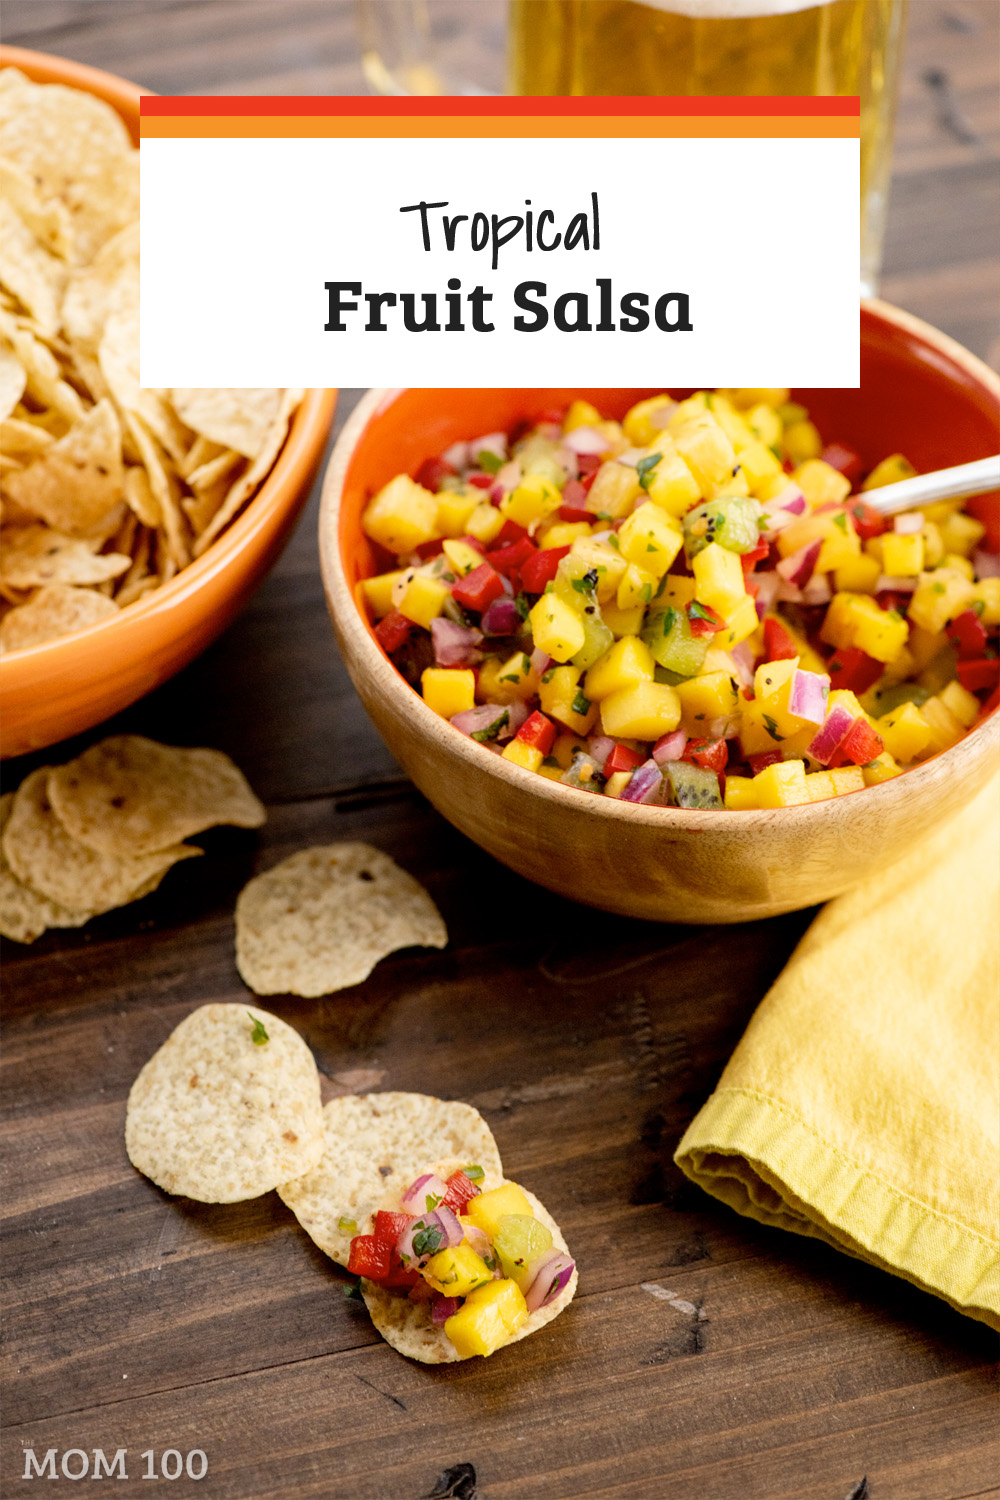 This tropical fruit salsa was recreated from a salsa bought from a fancy market. Good with chips, on any grilled or roasted meat, fish or poultry.